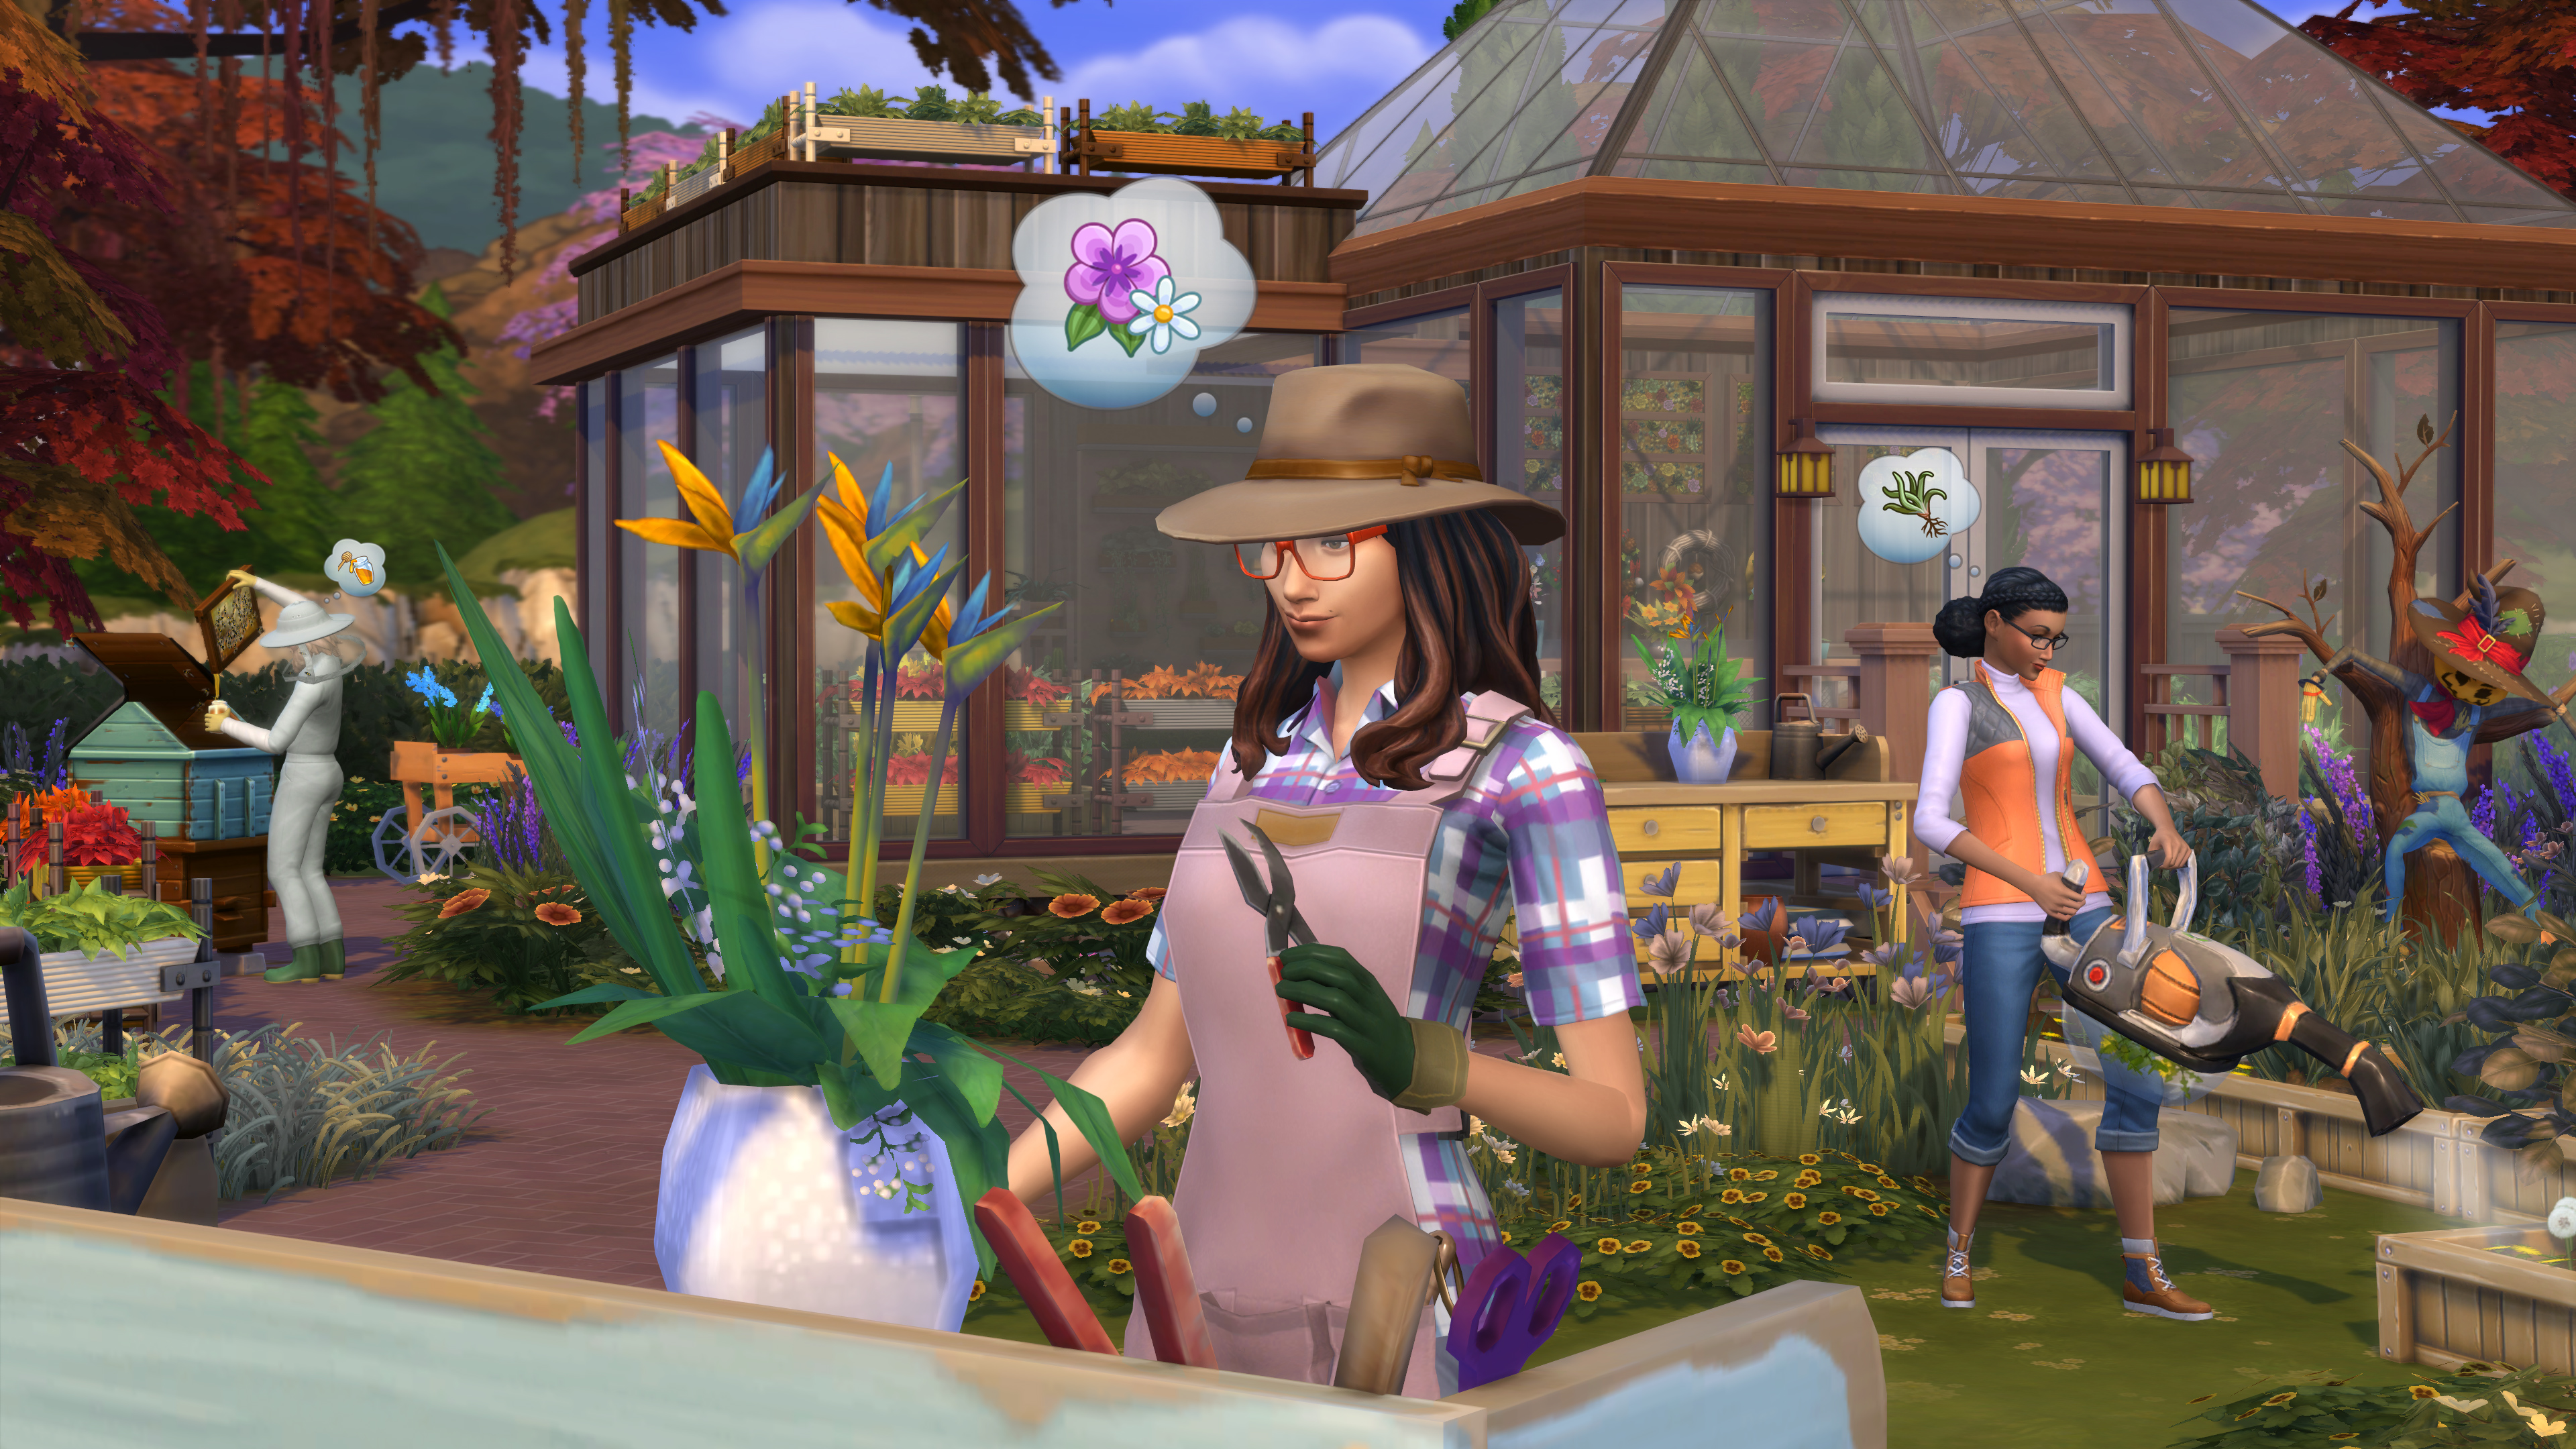 The sims 4 release date in Perth